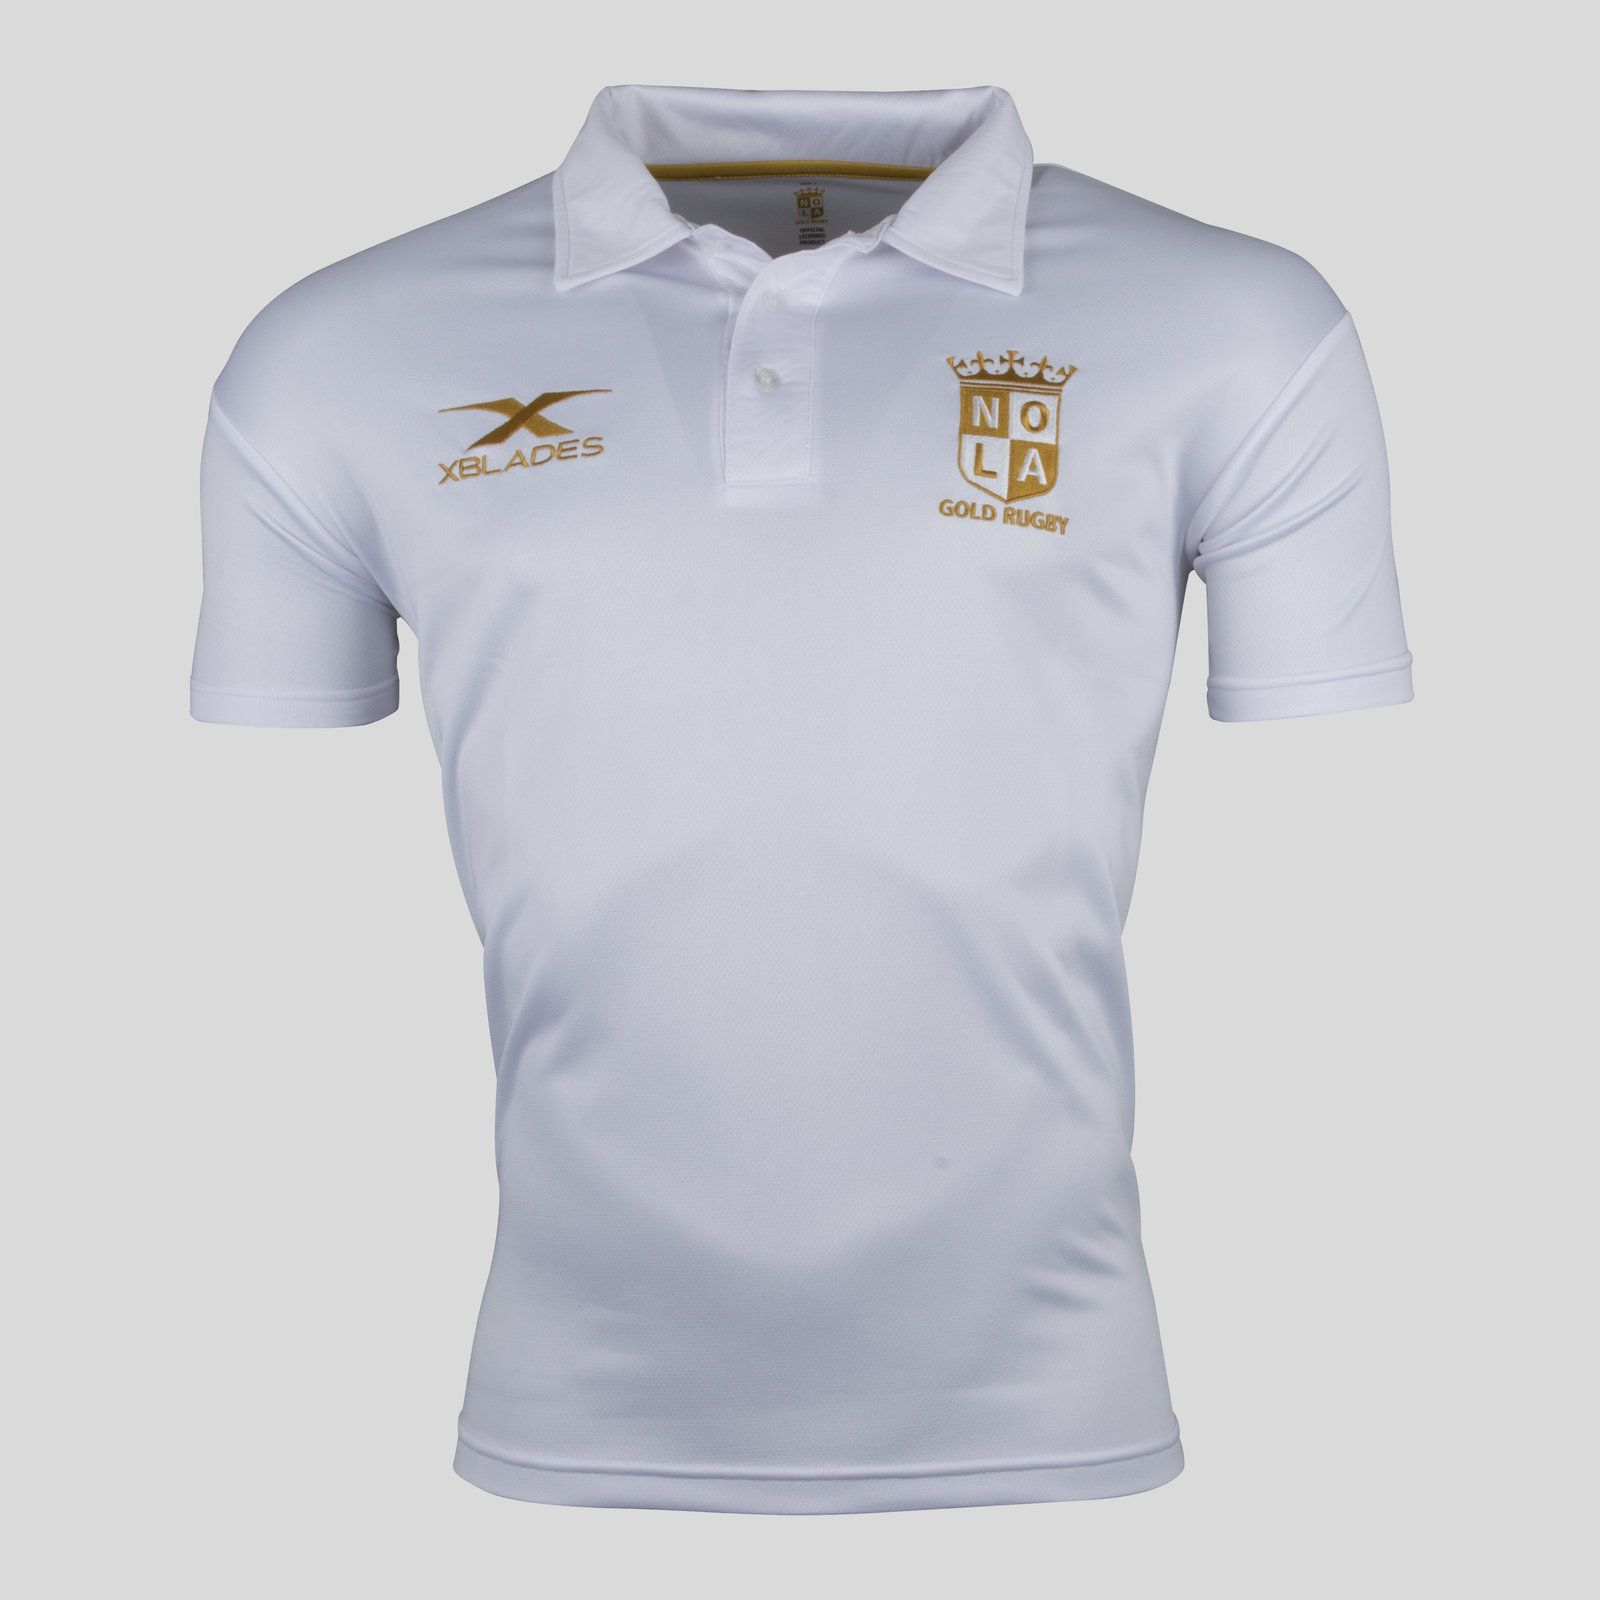 833eedf1540 New Orleans Gold MLR 2018 Players Rugby Polo Shirt - Uk Rugby Shop major  league rugby